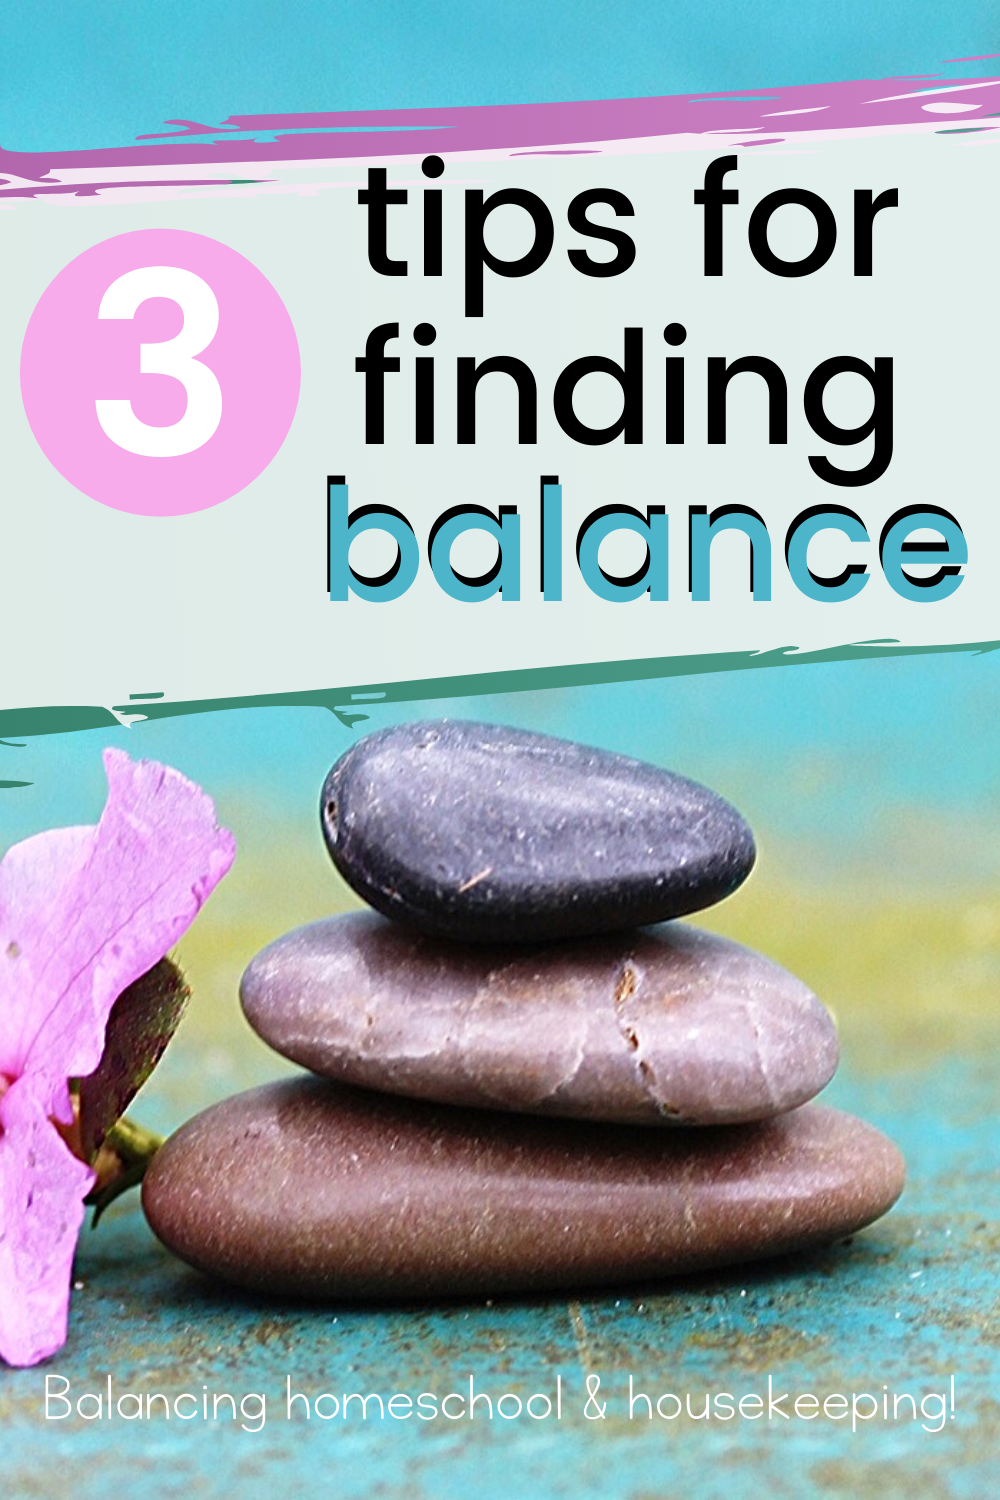 Discover three tips to help you find more balance in your homeschool life. These tips will help you find homeschool balance and plan your days successfully.